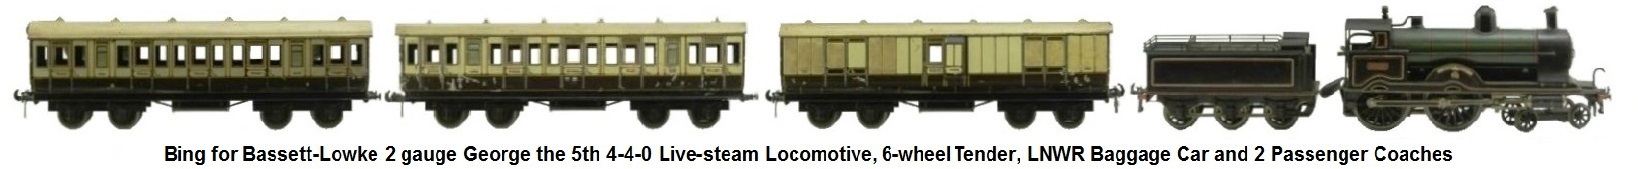 Bassett-Lowke 'O' gauge George the 5th 4-4-0 live steam locomotive, 6 wheel tender, London and Northwest Railway Baggage car and two coaches